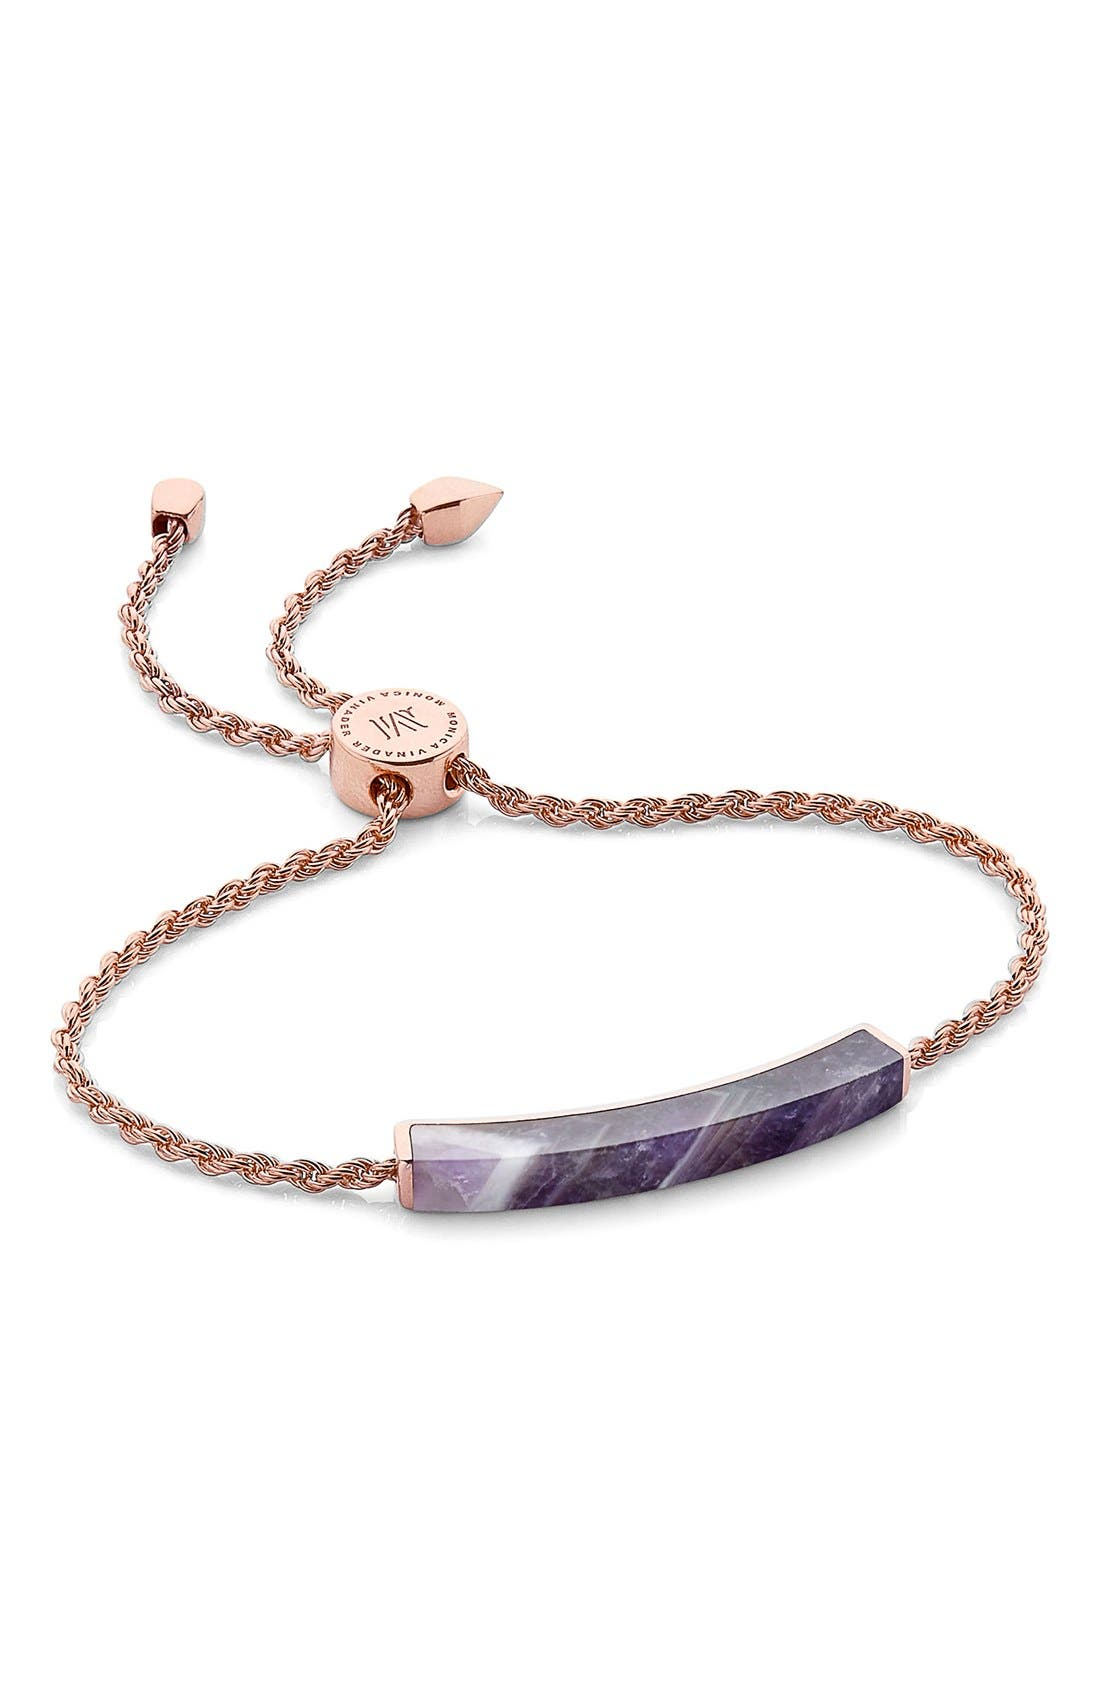 Monica Vinader Linear Semiprecious Stone Friendship Bracelet (Nordstrom Exclusive)